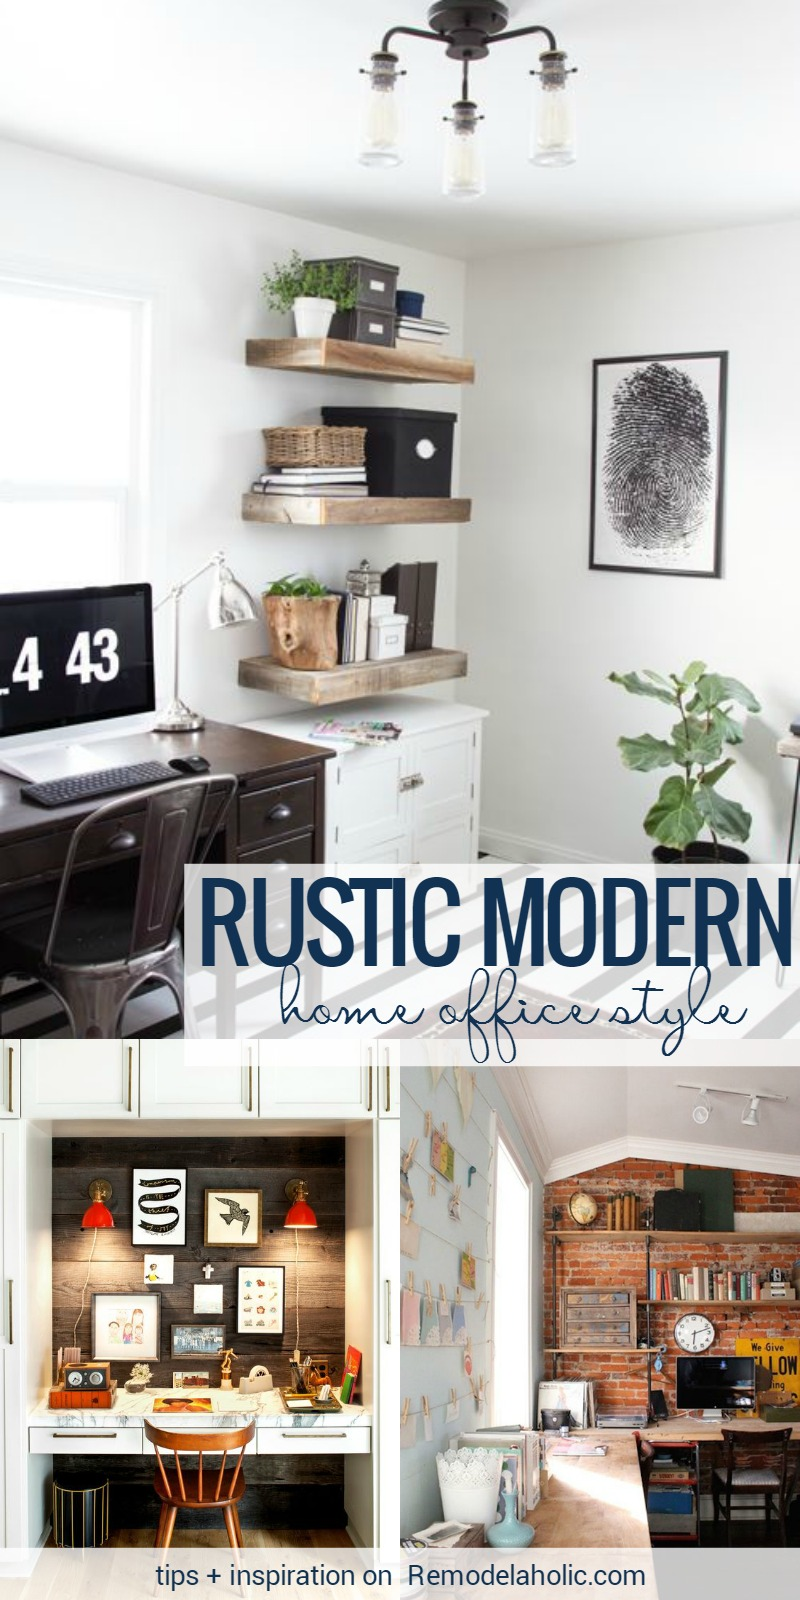 Remodelaholic | Rustic Modern Home Office Design Inspiration & Tips